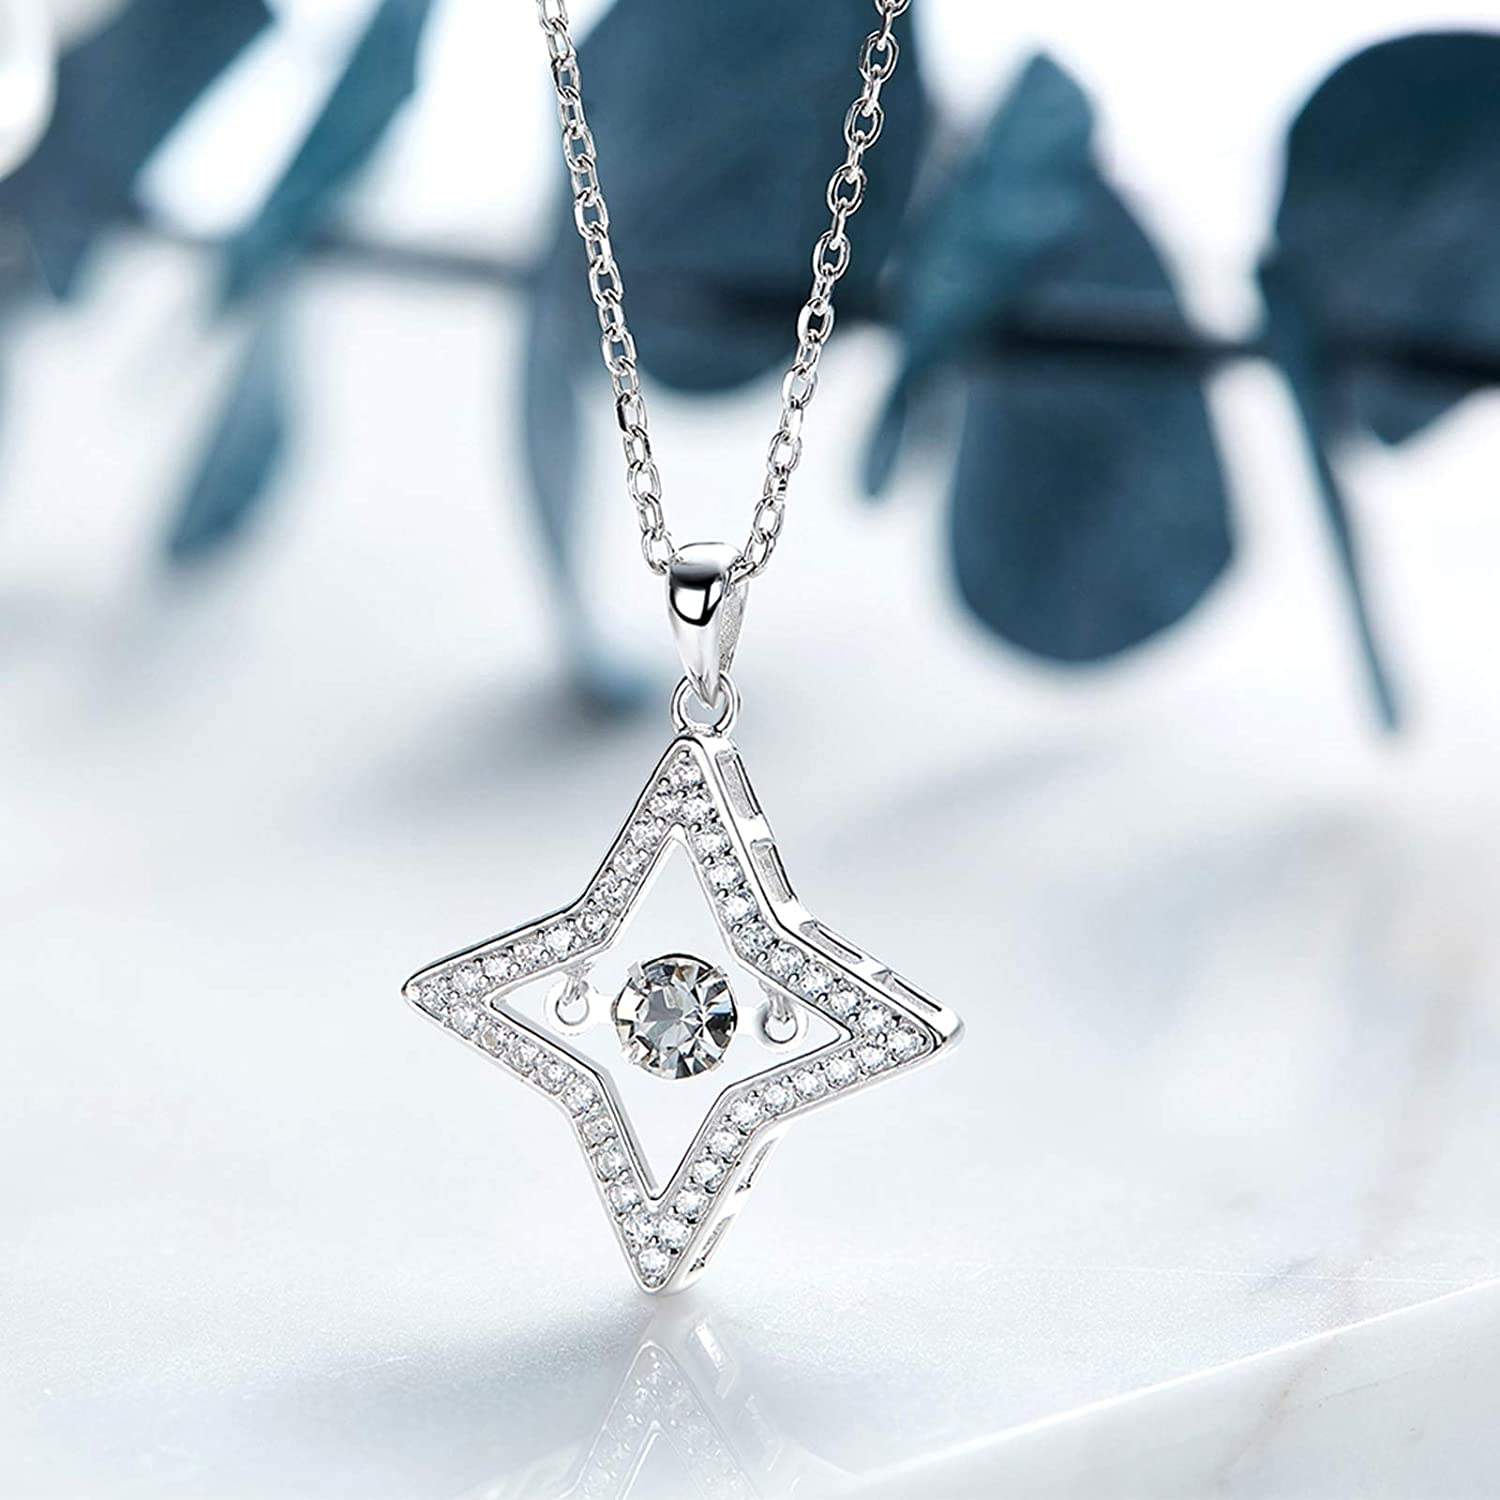 EoCot Silver Plated Star Necklace for Women Round Shape White Cubic Zirconia Pendant Necklaces Birthday Jewellery Gifts